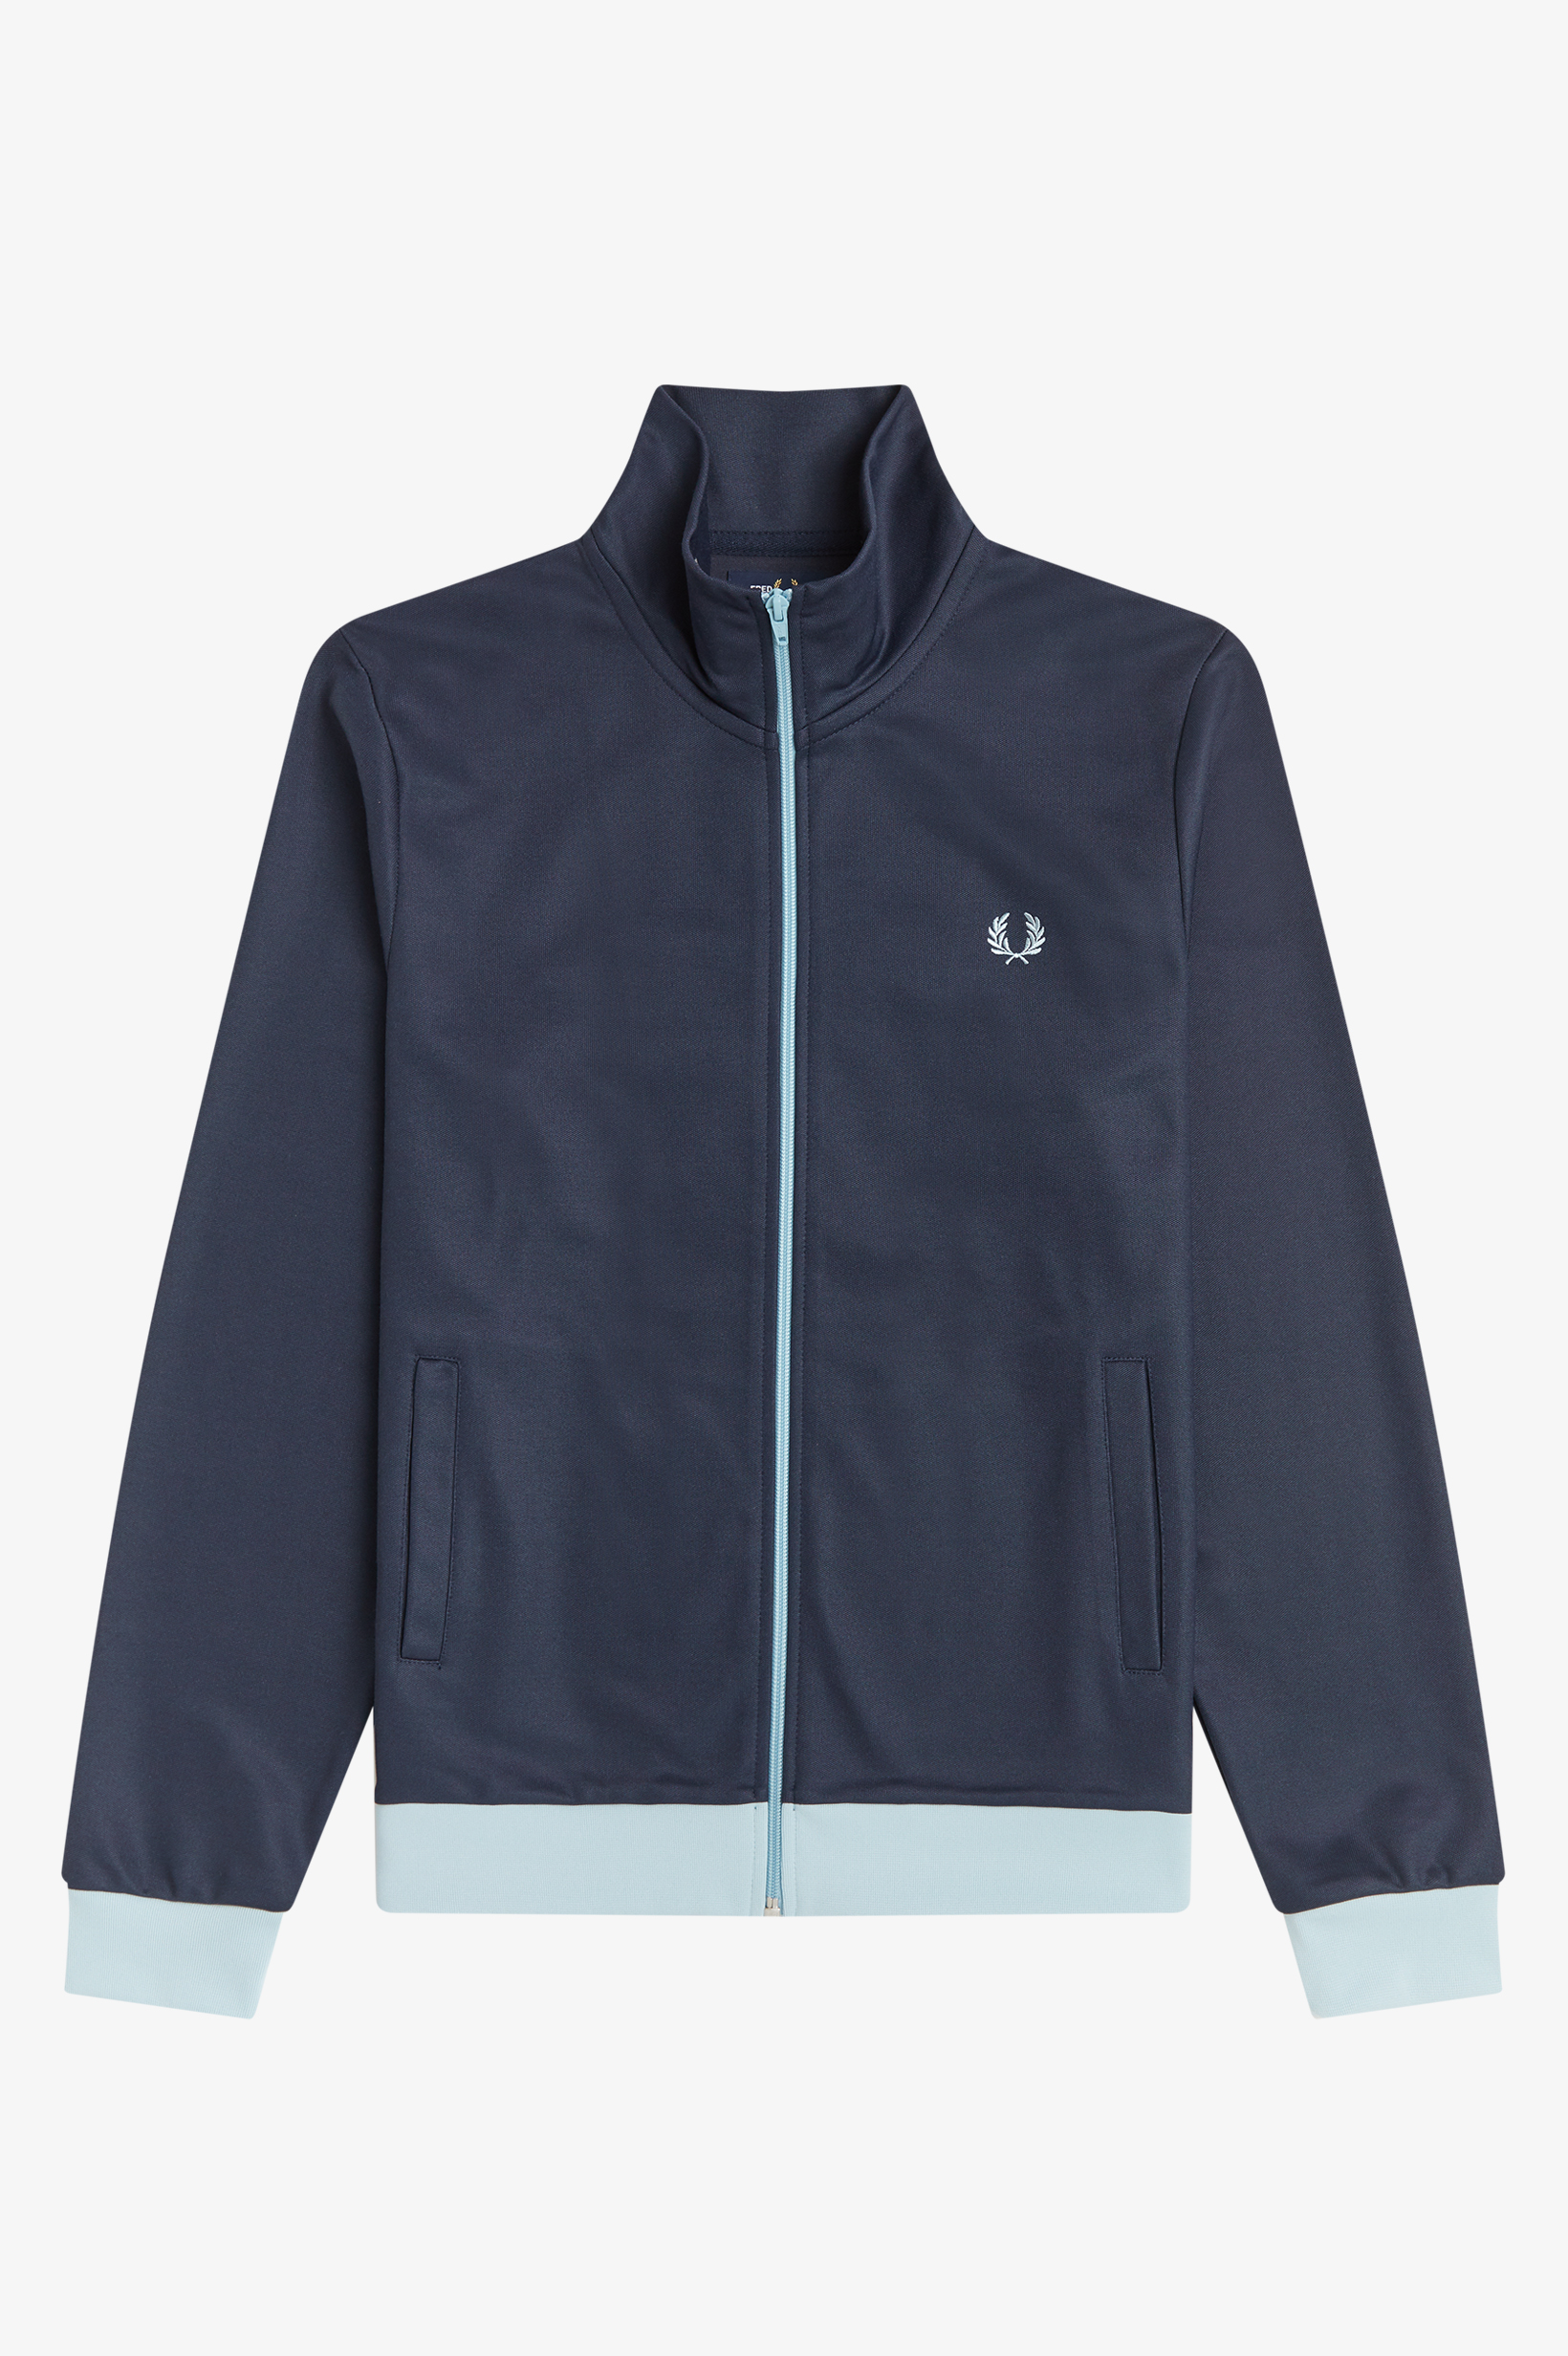 Fred Perry - CONTRAST TRIM TRACK JACKET - Dark Airforce